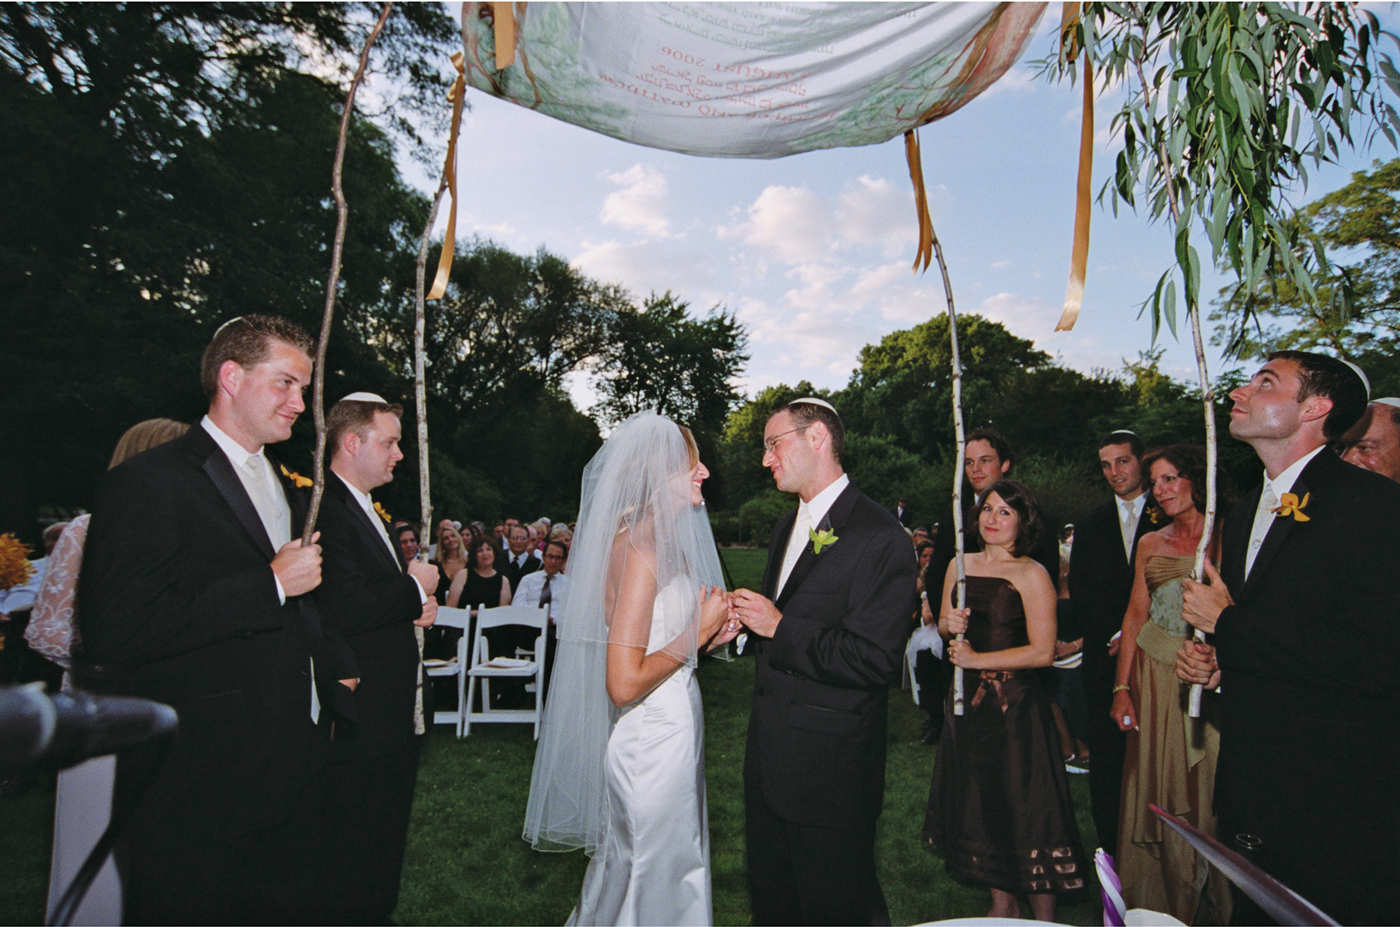 Jewish Wedding Traditions.Jewish Wedding Traditions